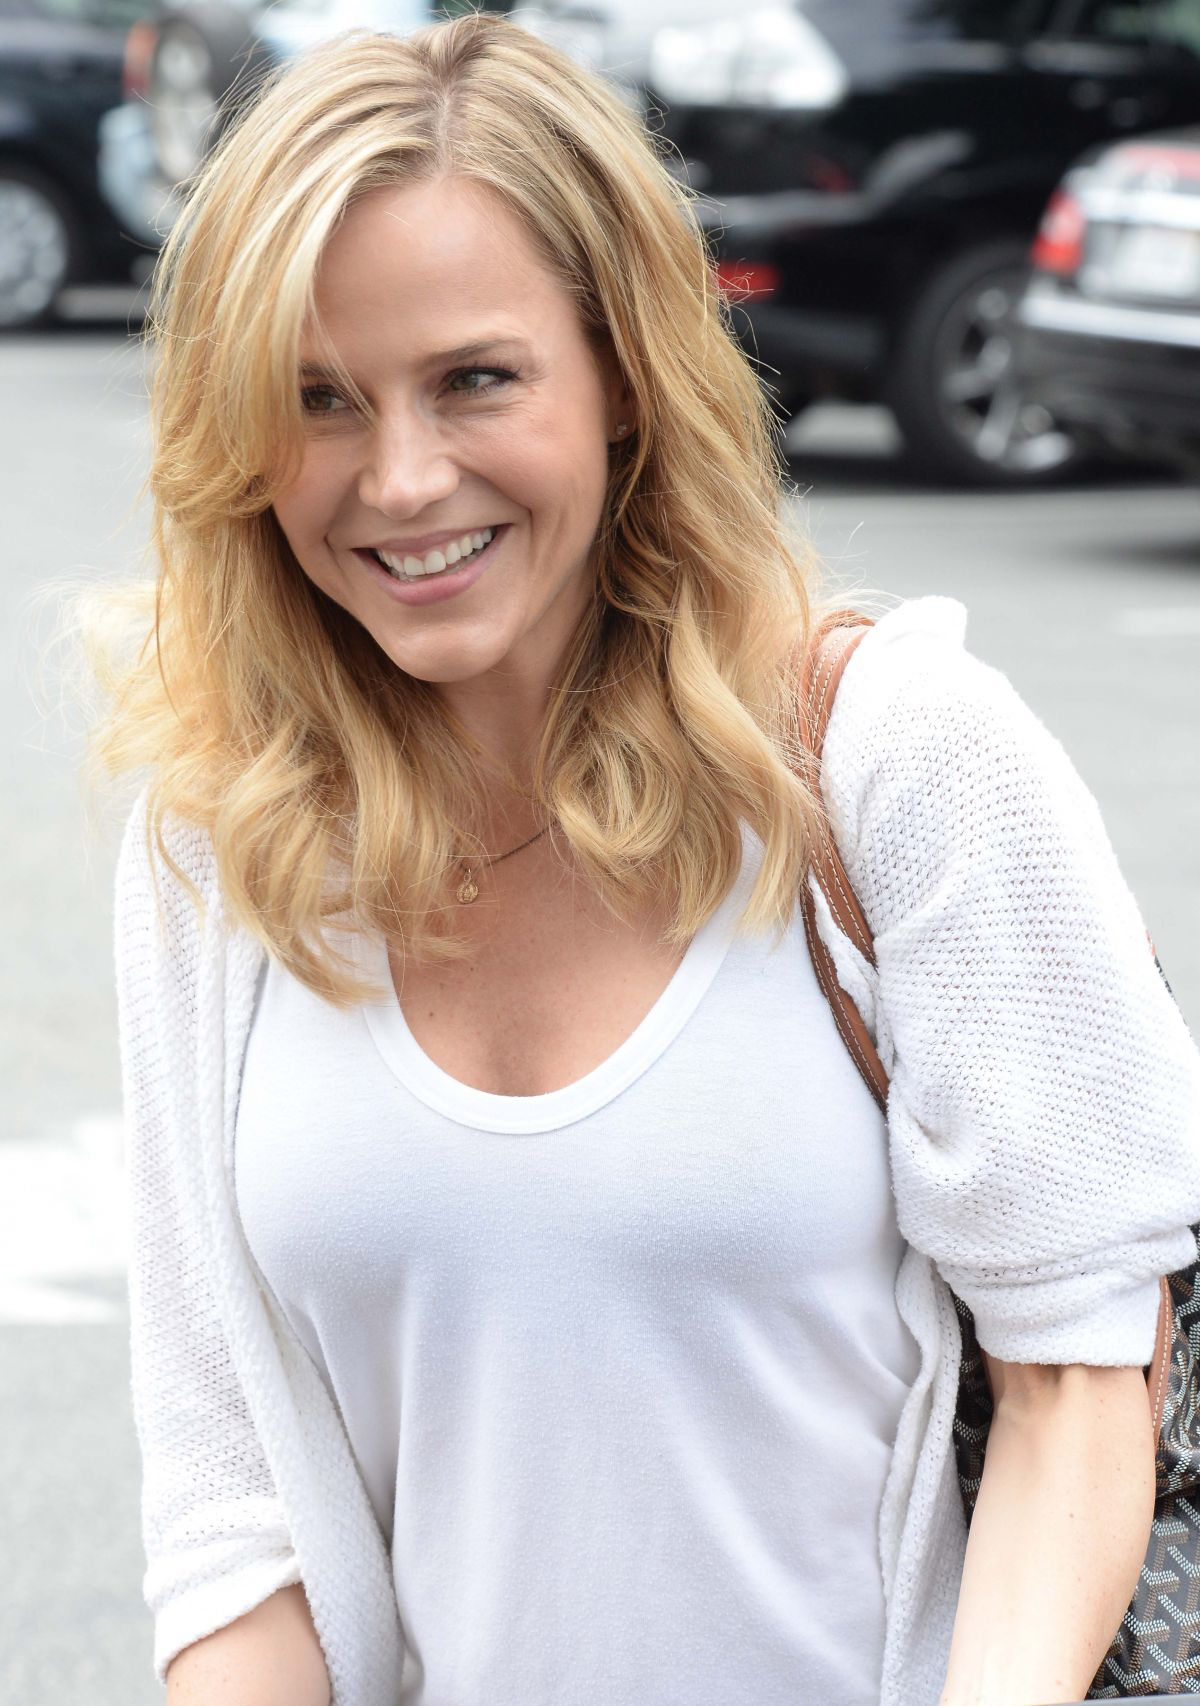 Photos Julie Benz nudes (37 photo), Tits, Leaked, Twitter, braless 2015